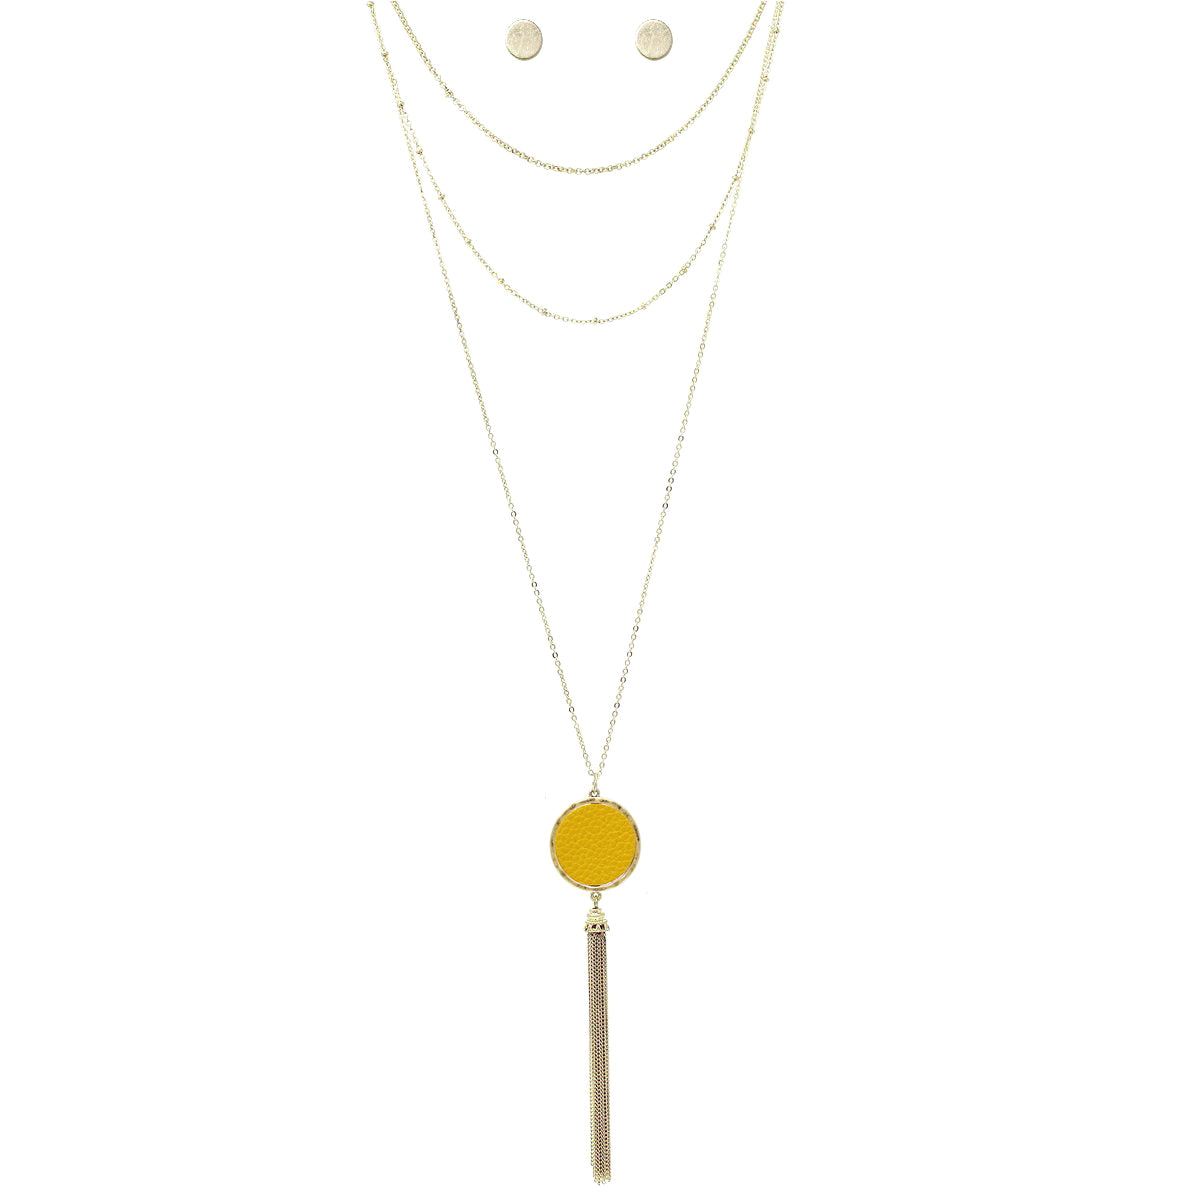 Leather Disc With Chain Tassel Pendant Chain Layered Necklace